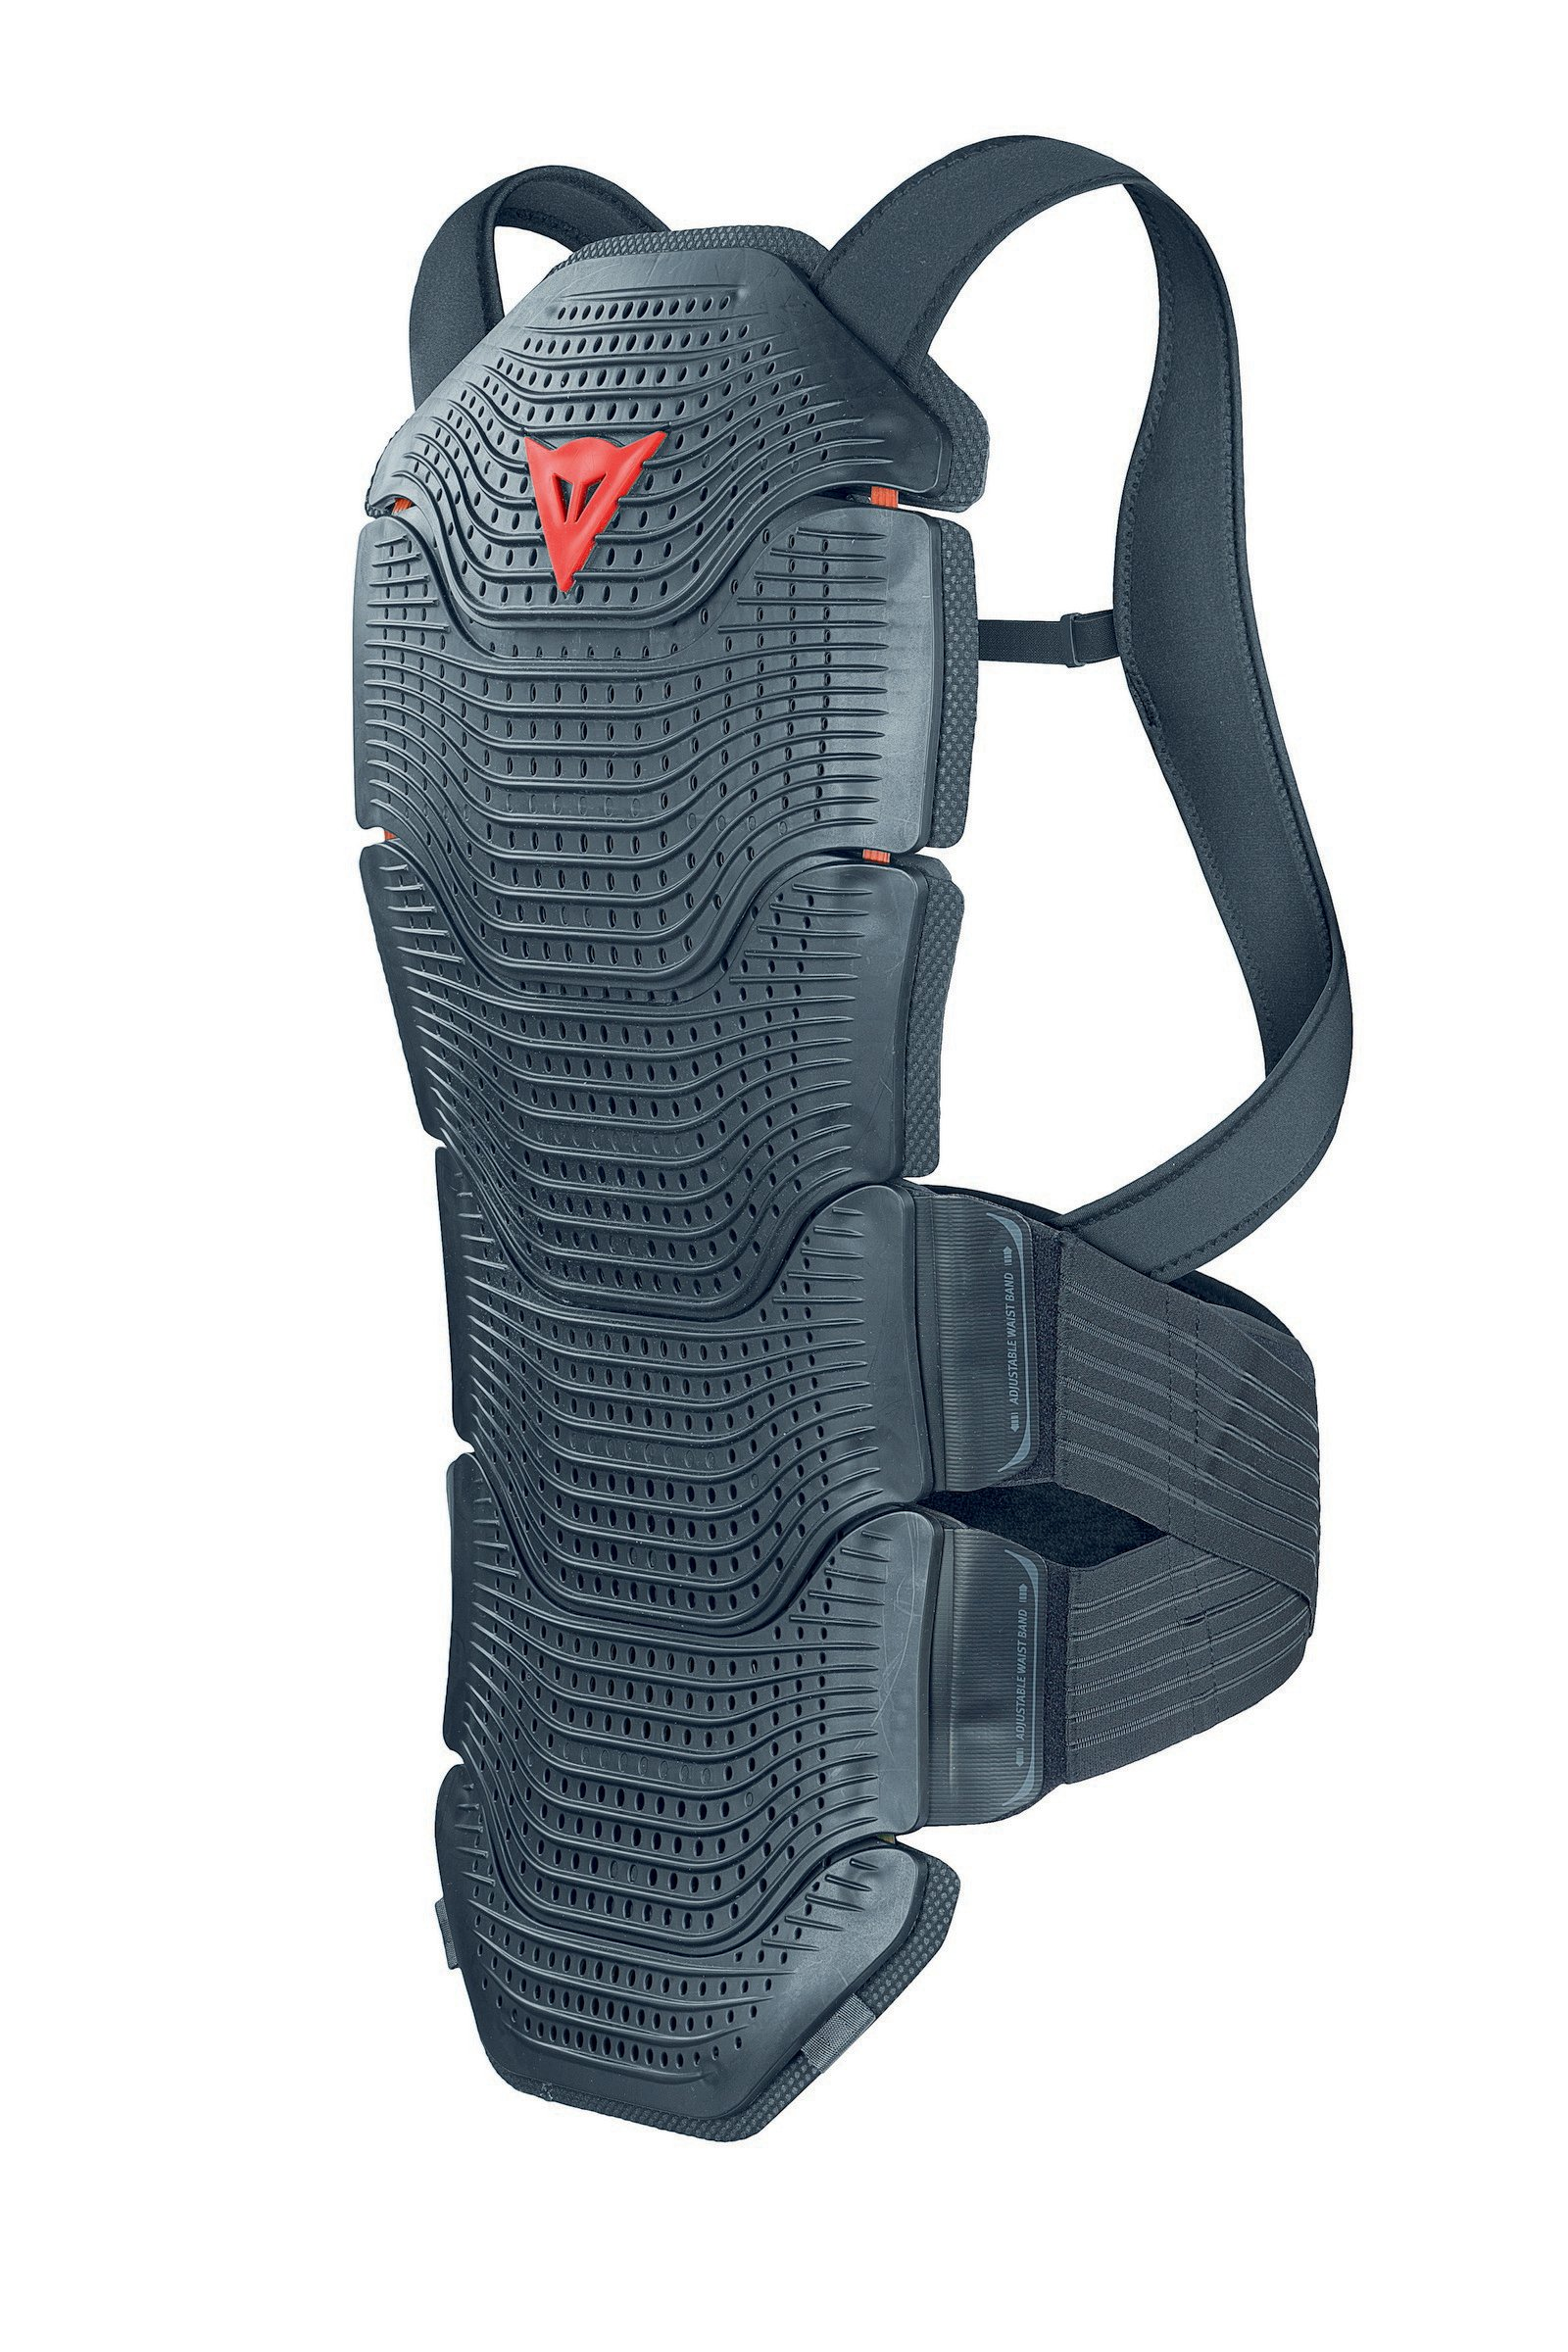 Dainese Manis D1 49 Back Protector (S) by Dainese